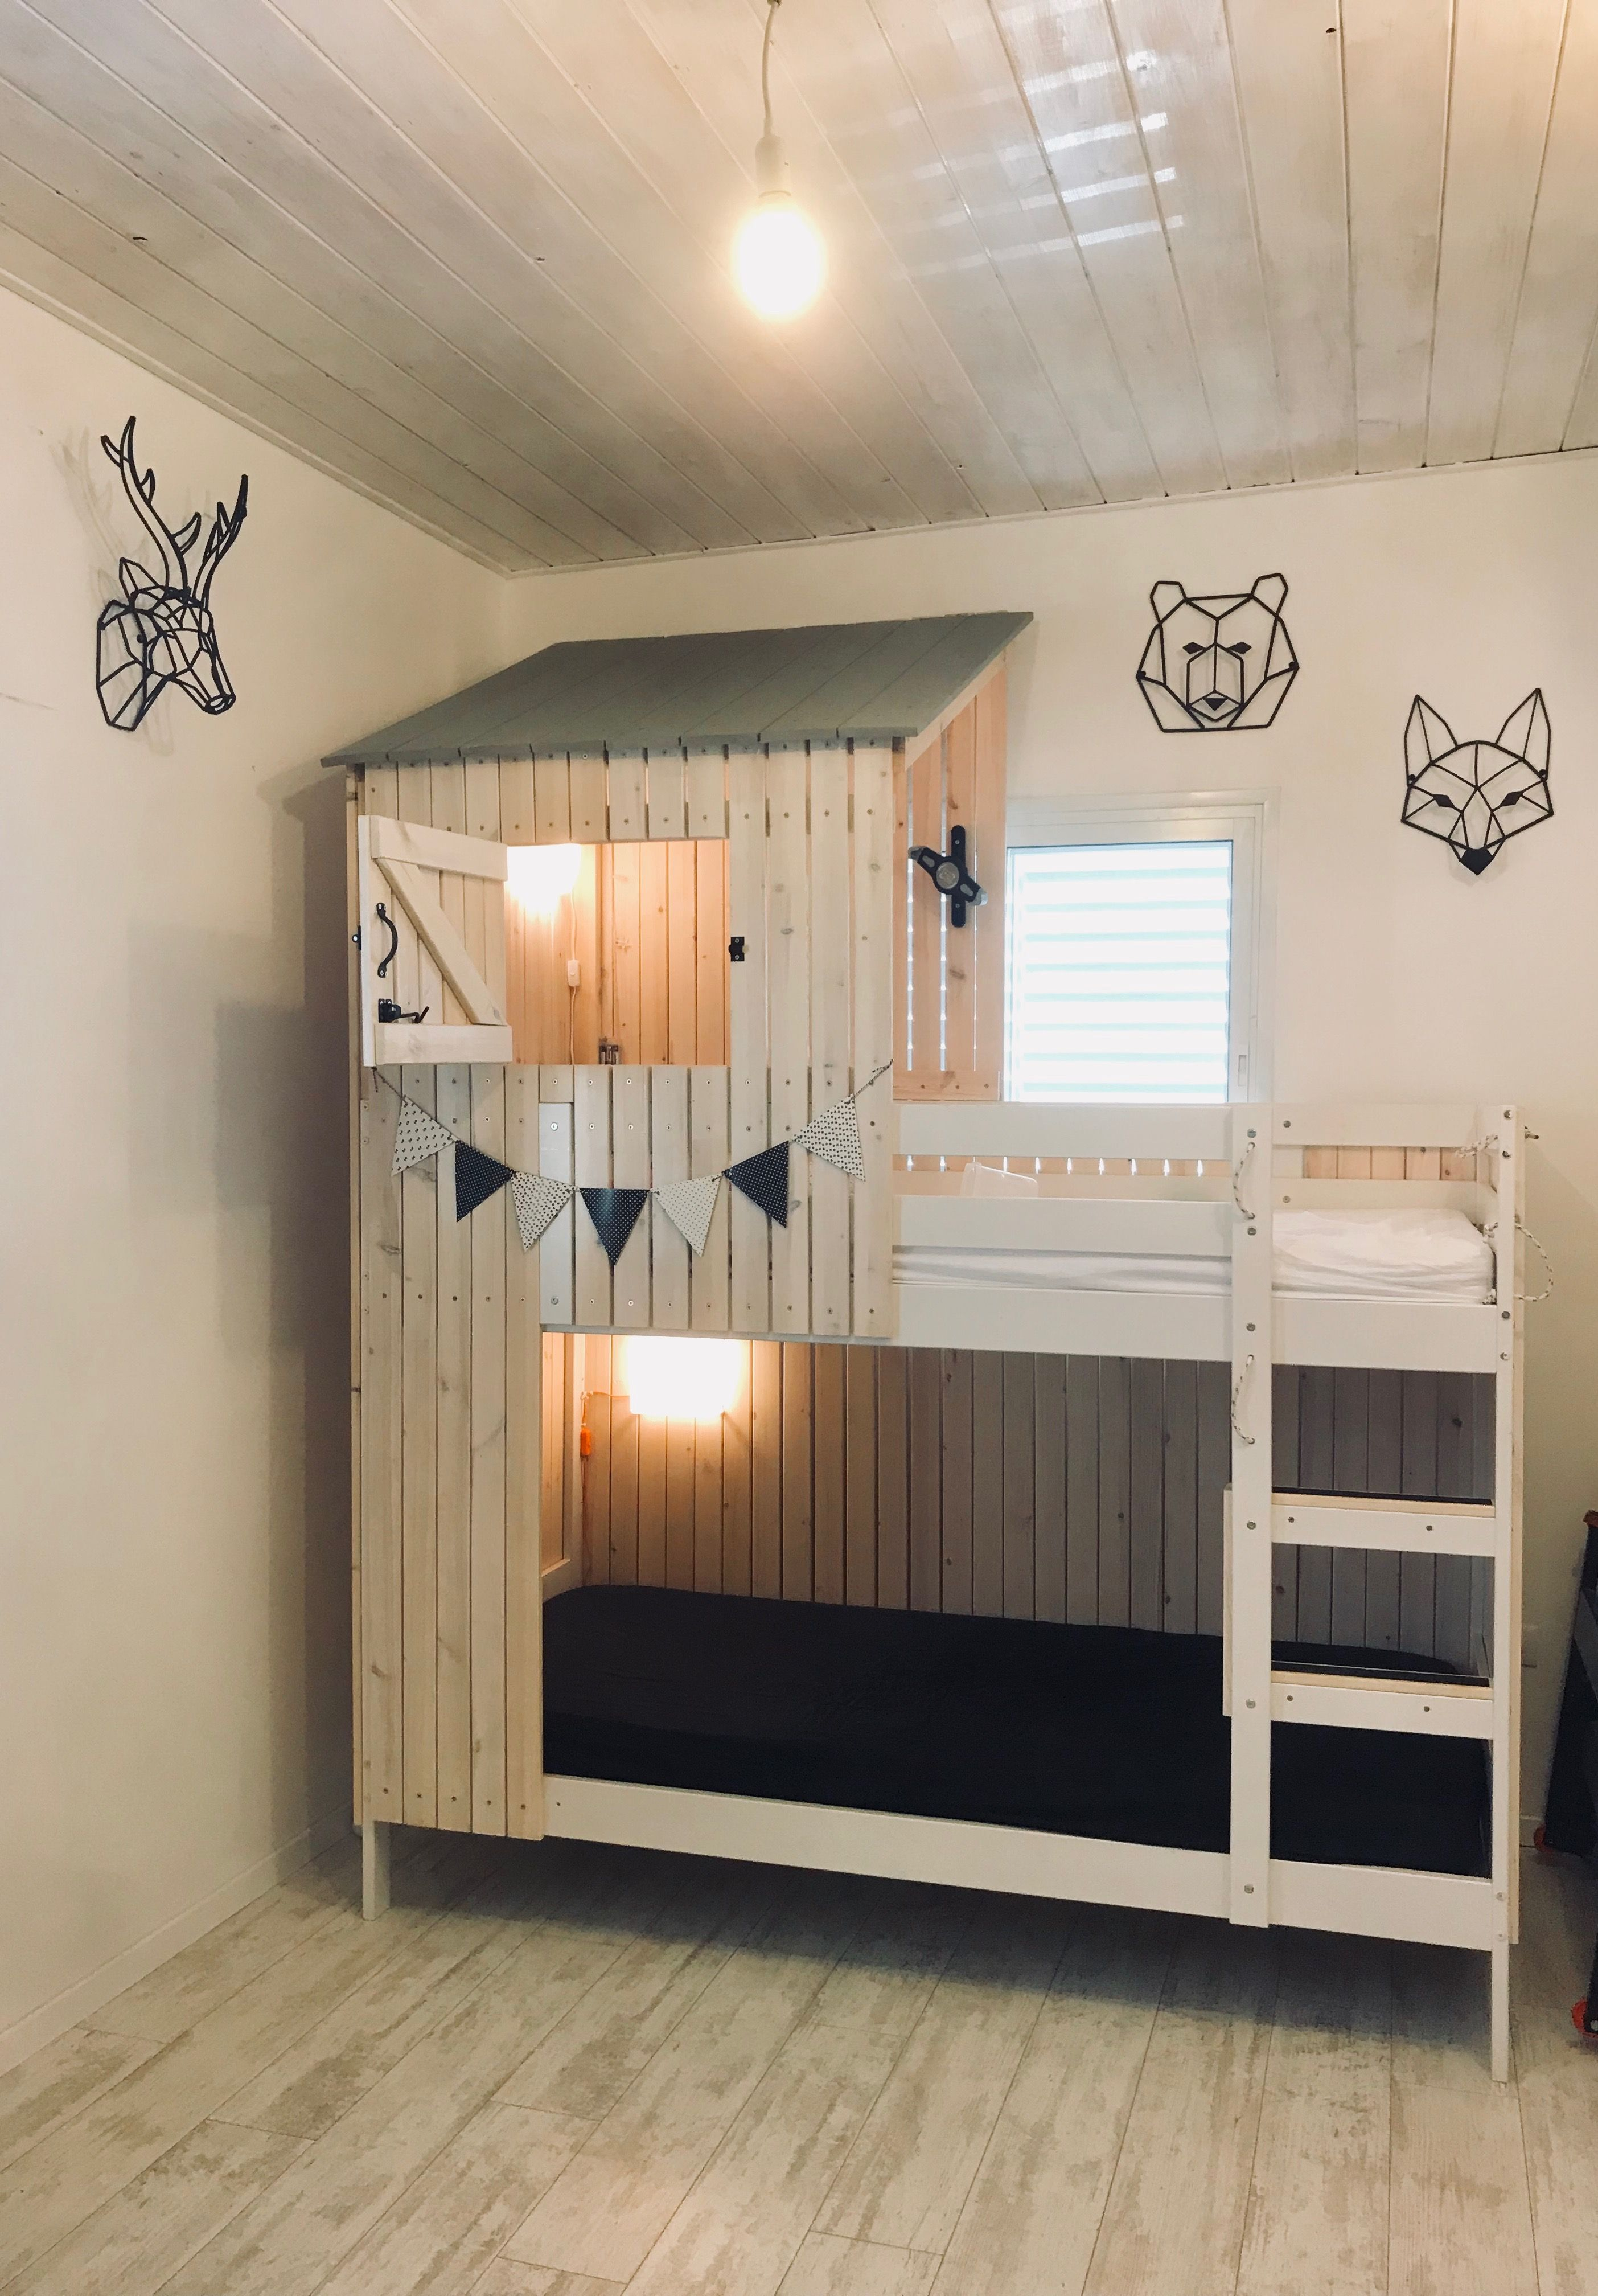 Hochbett Rutsche Ikea A Wooden House Built On Ikea Mydal Bed Isny Kids Bedroom